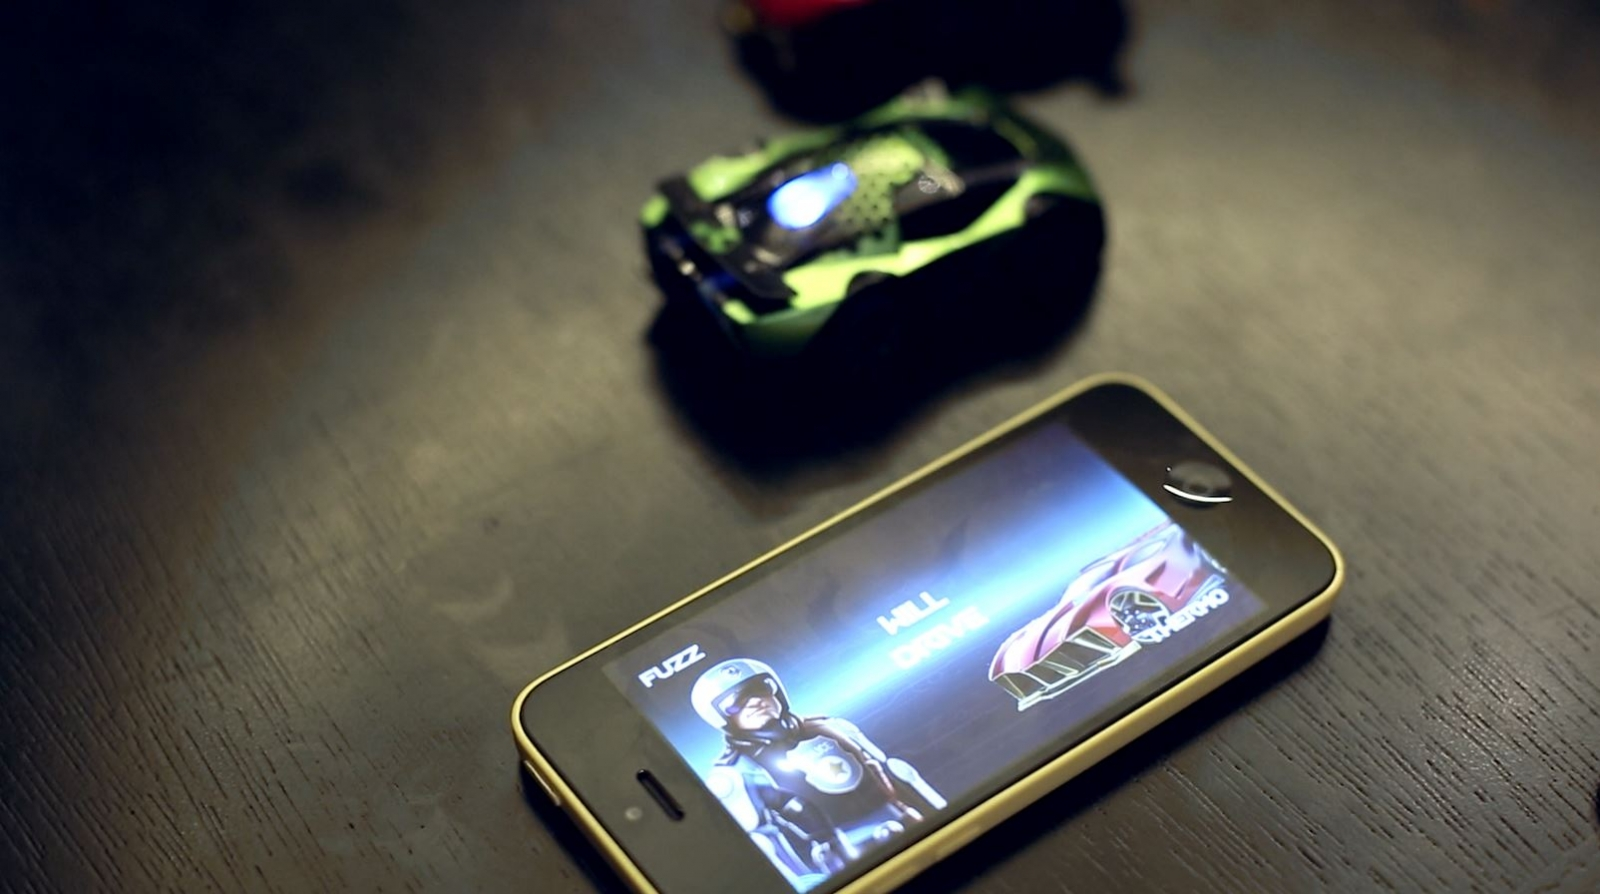 Anki Overdrive toys of the future and building a real world version of the Toy Story toy box